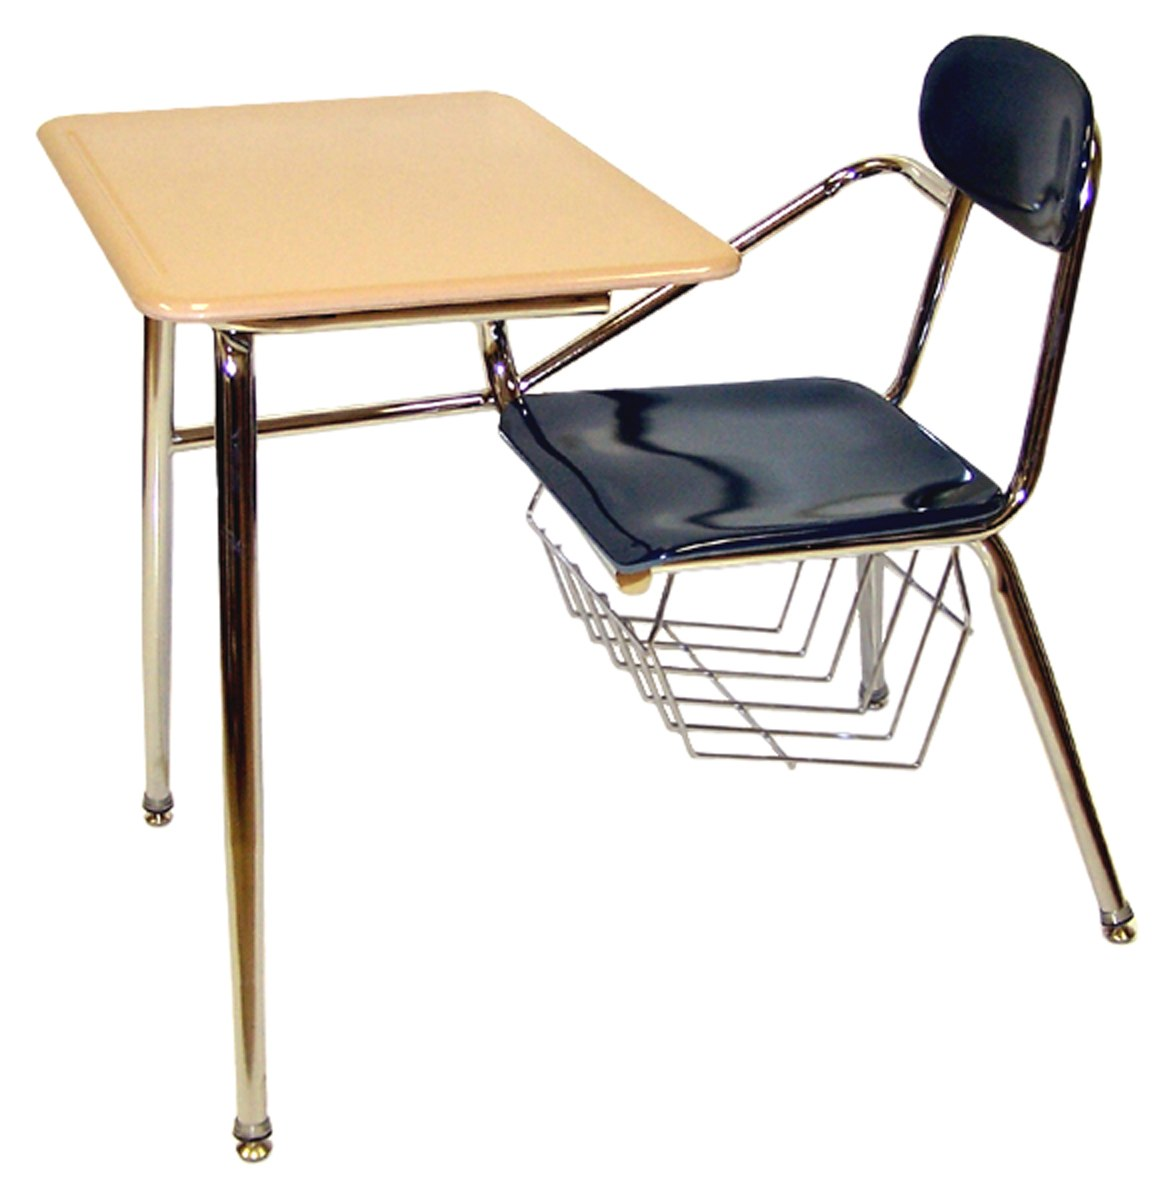 Classroom furniture desks chairs whiteboards in for Tables and desks in the classroom